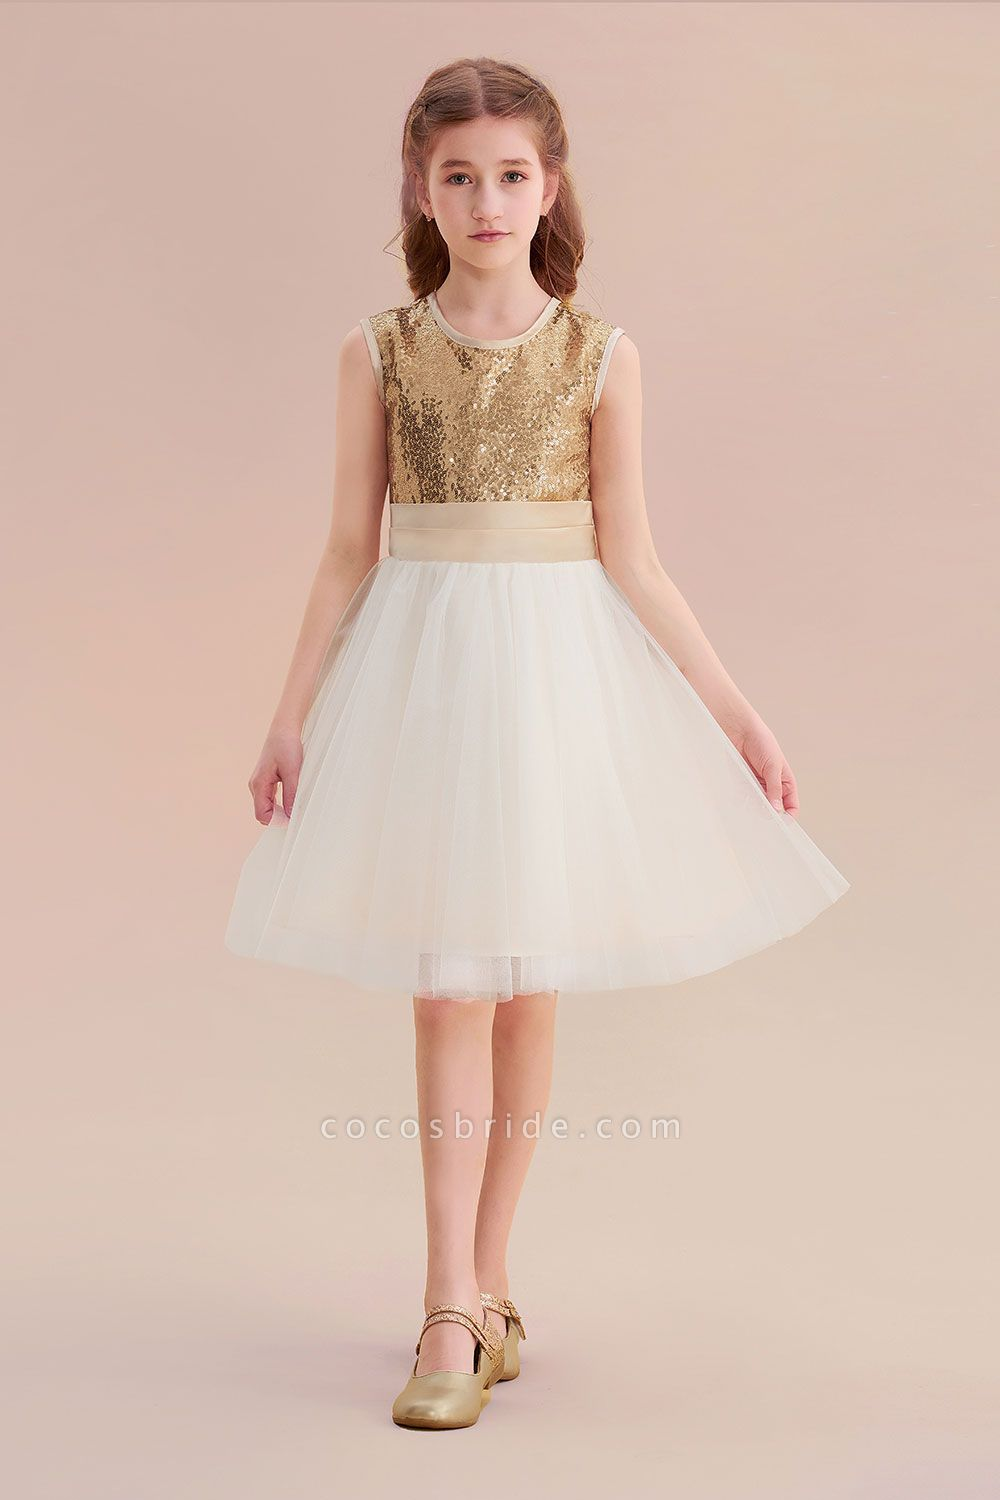 Sequins Tulle Bow A-line Flower Girl Dress